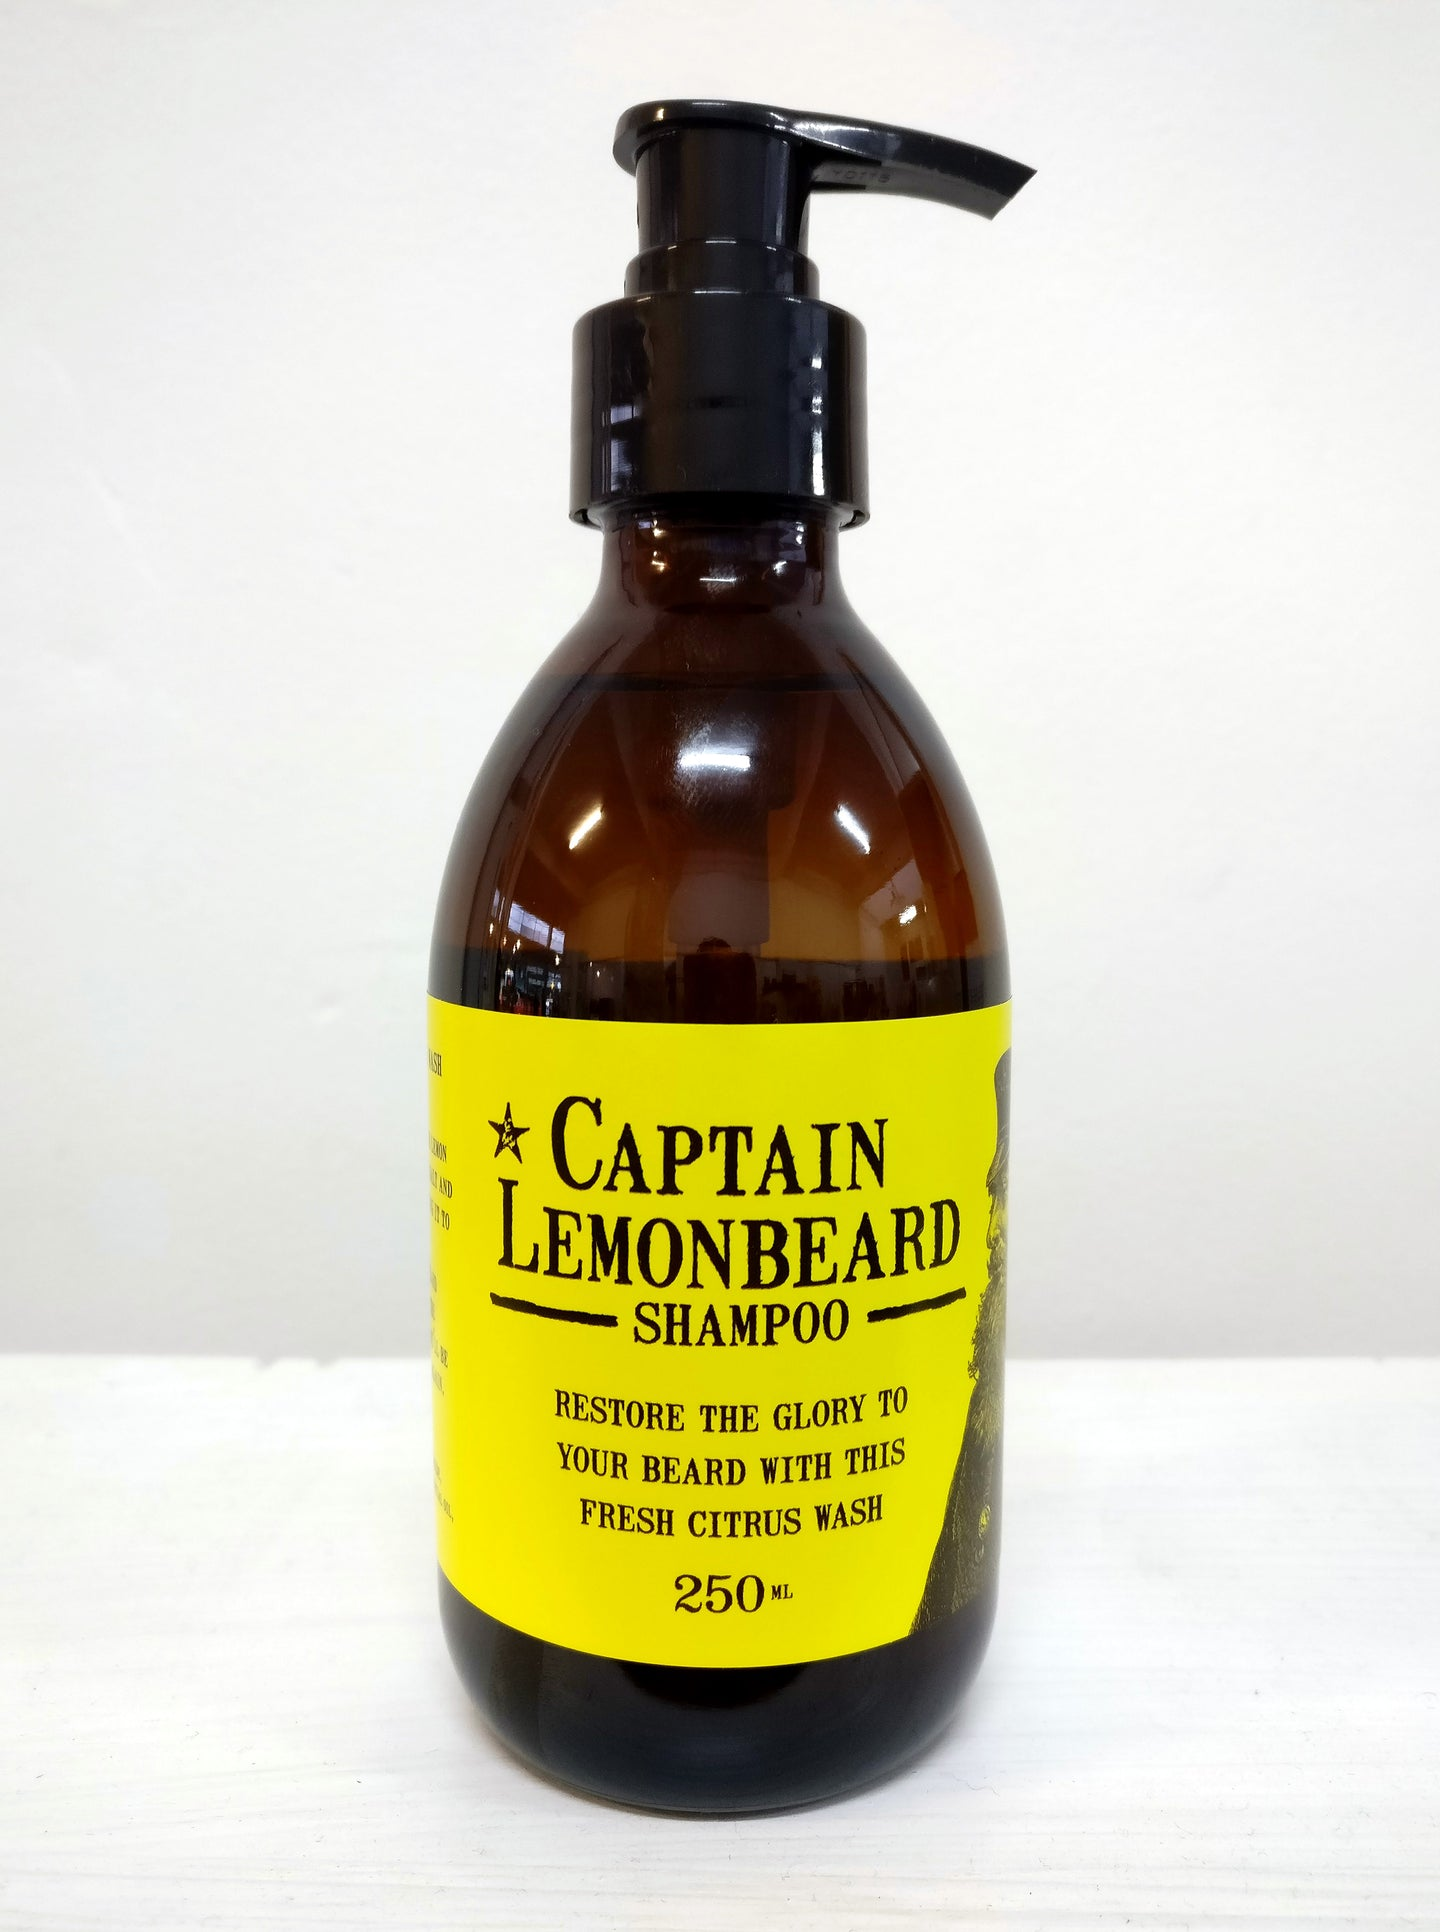 Captain Lemonbeard Shampoo